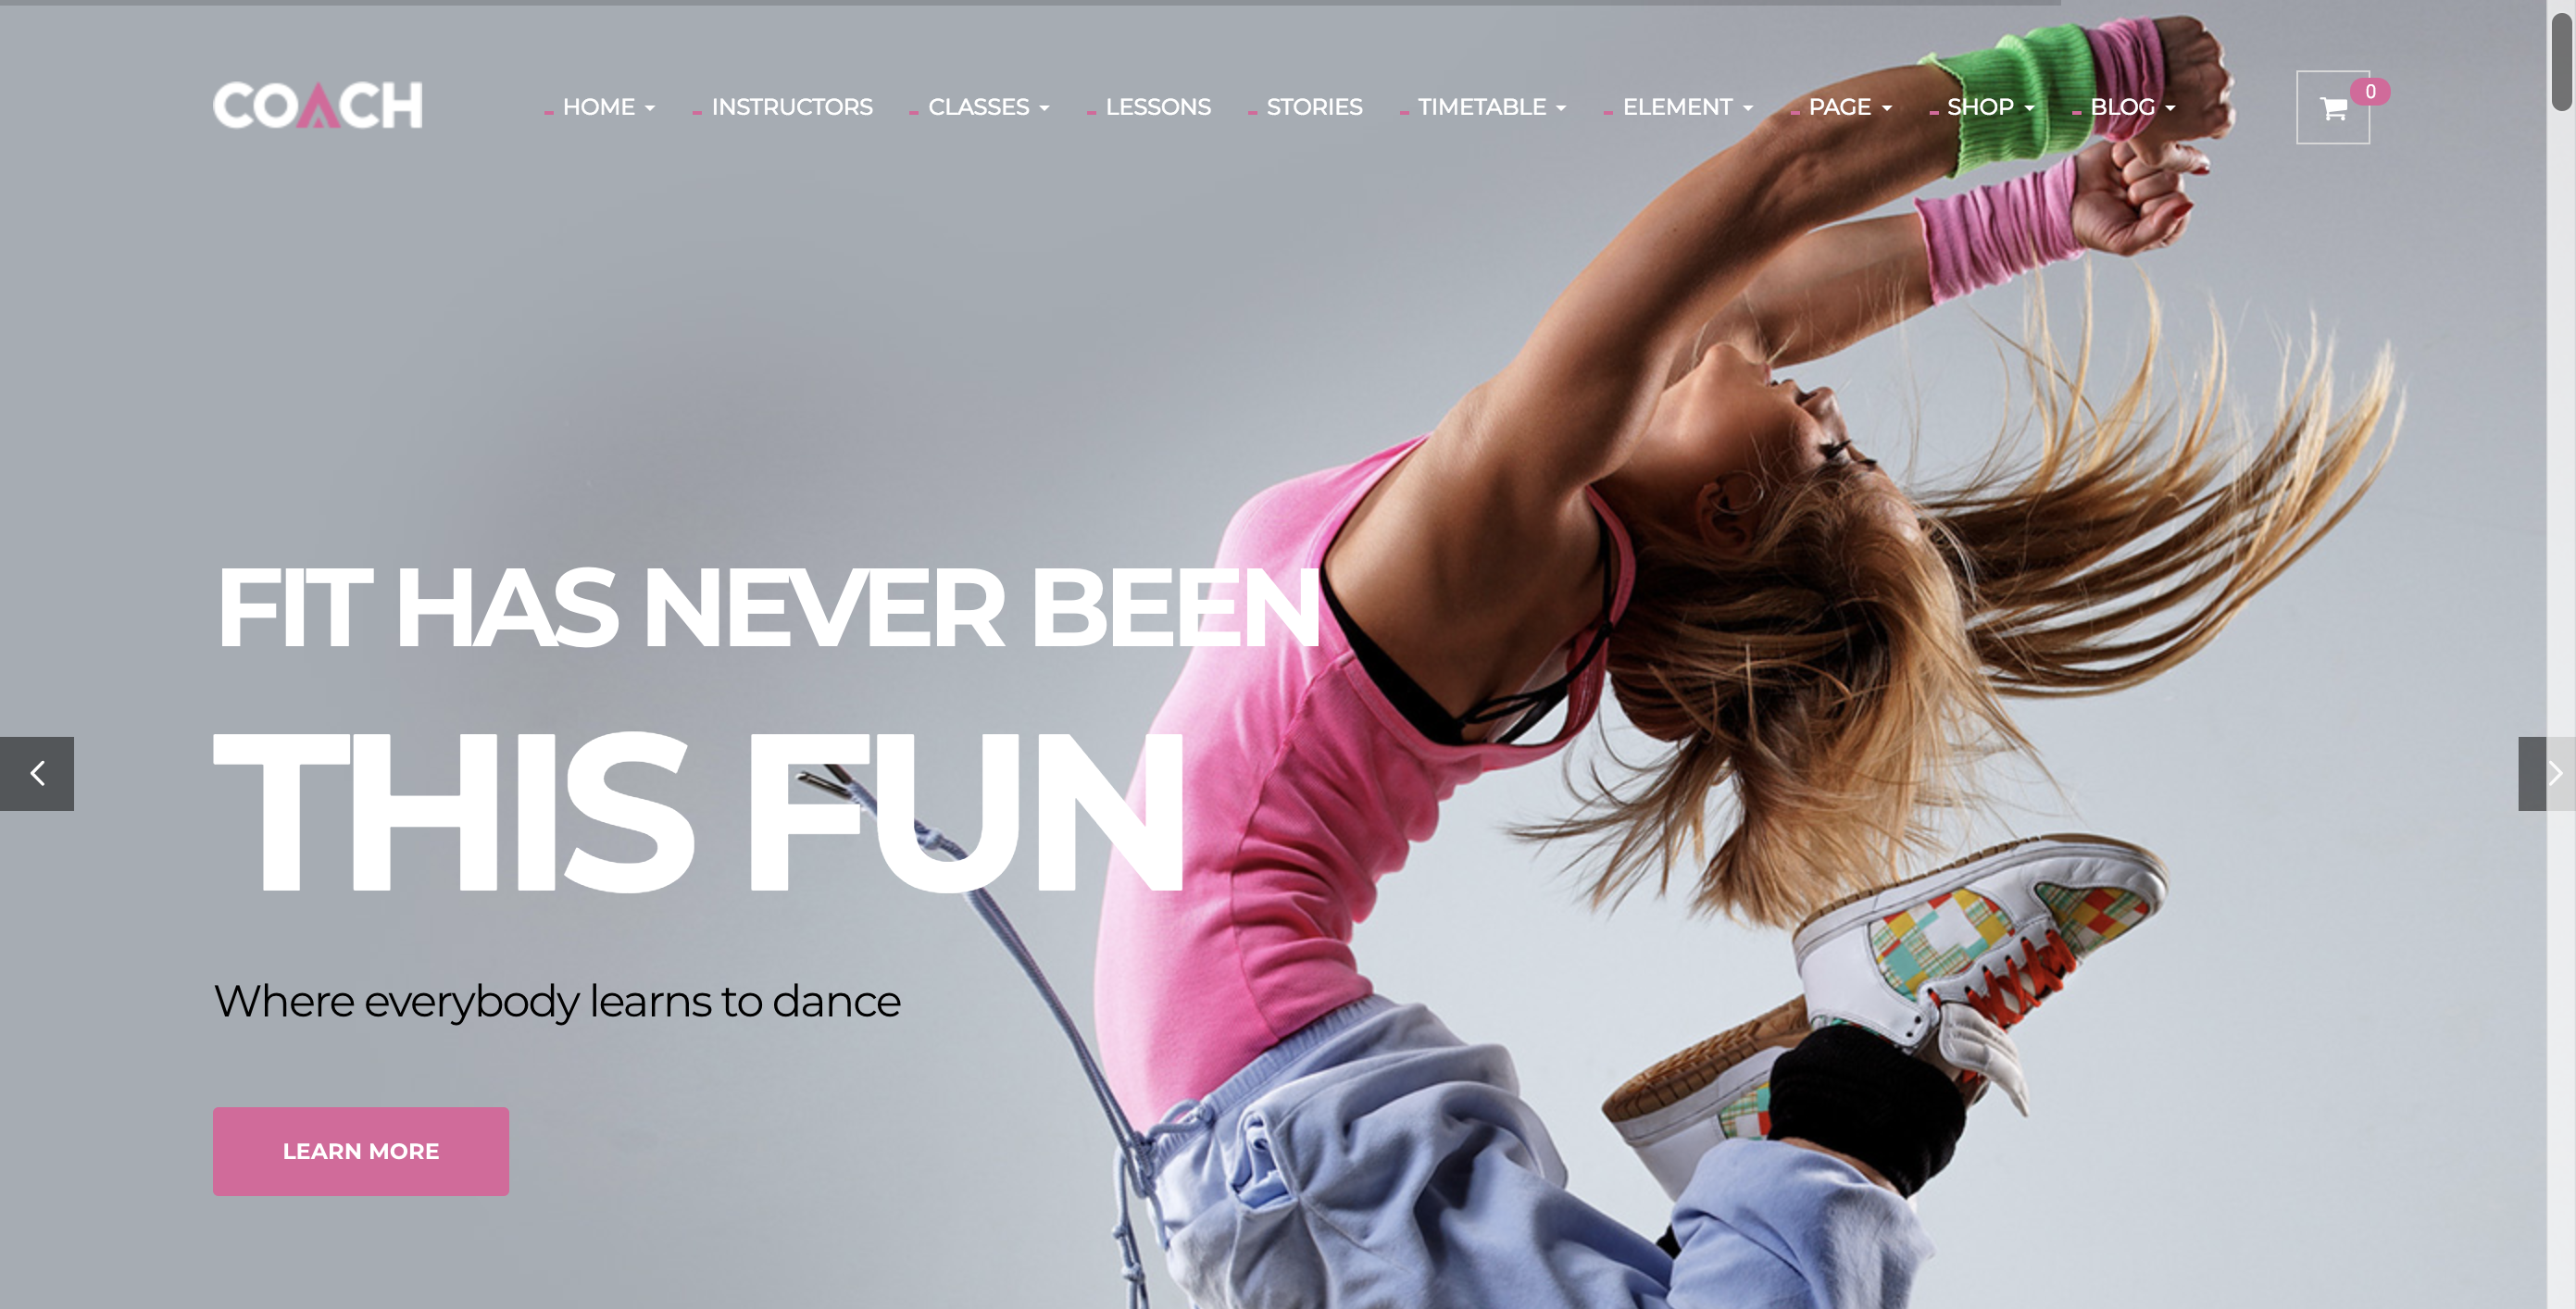 Coach - Sport Clubs, Fitness Centers & Courses WordPress Theme.png